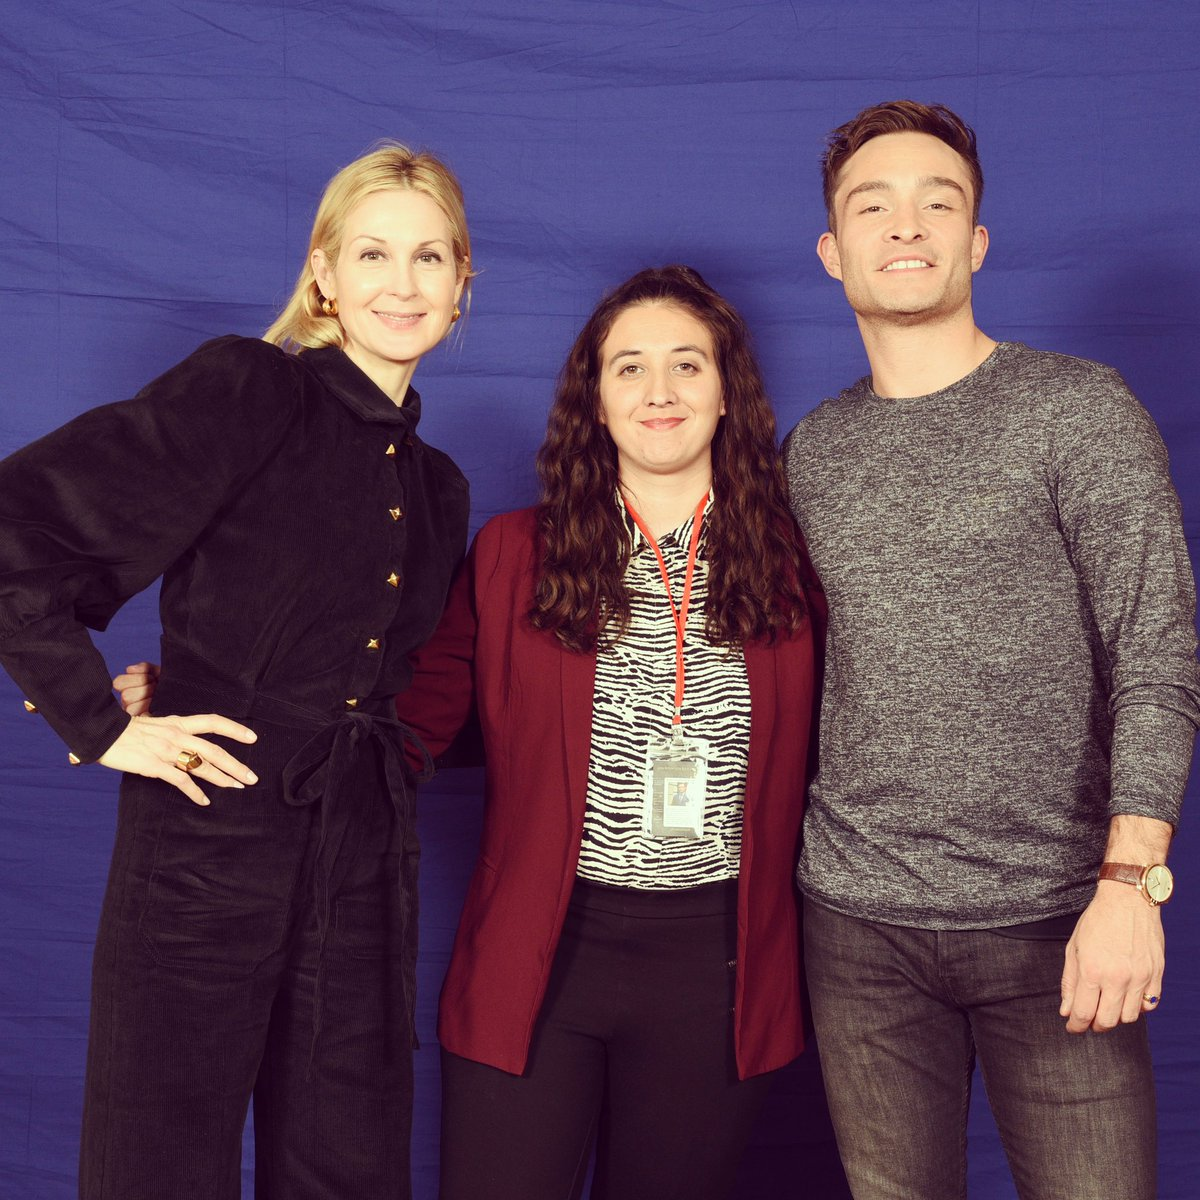 After Paris it will be cool to meet you again in Germany for #GermanComicCon @KellyRutherford ❤️☺️ (hello @EdWestwick 😏) #GossipGirl